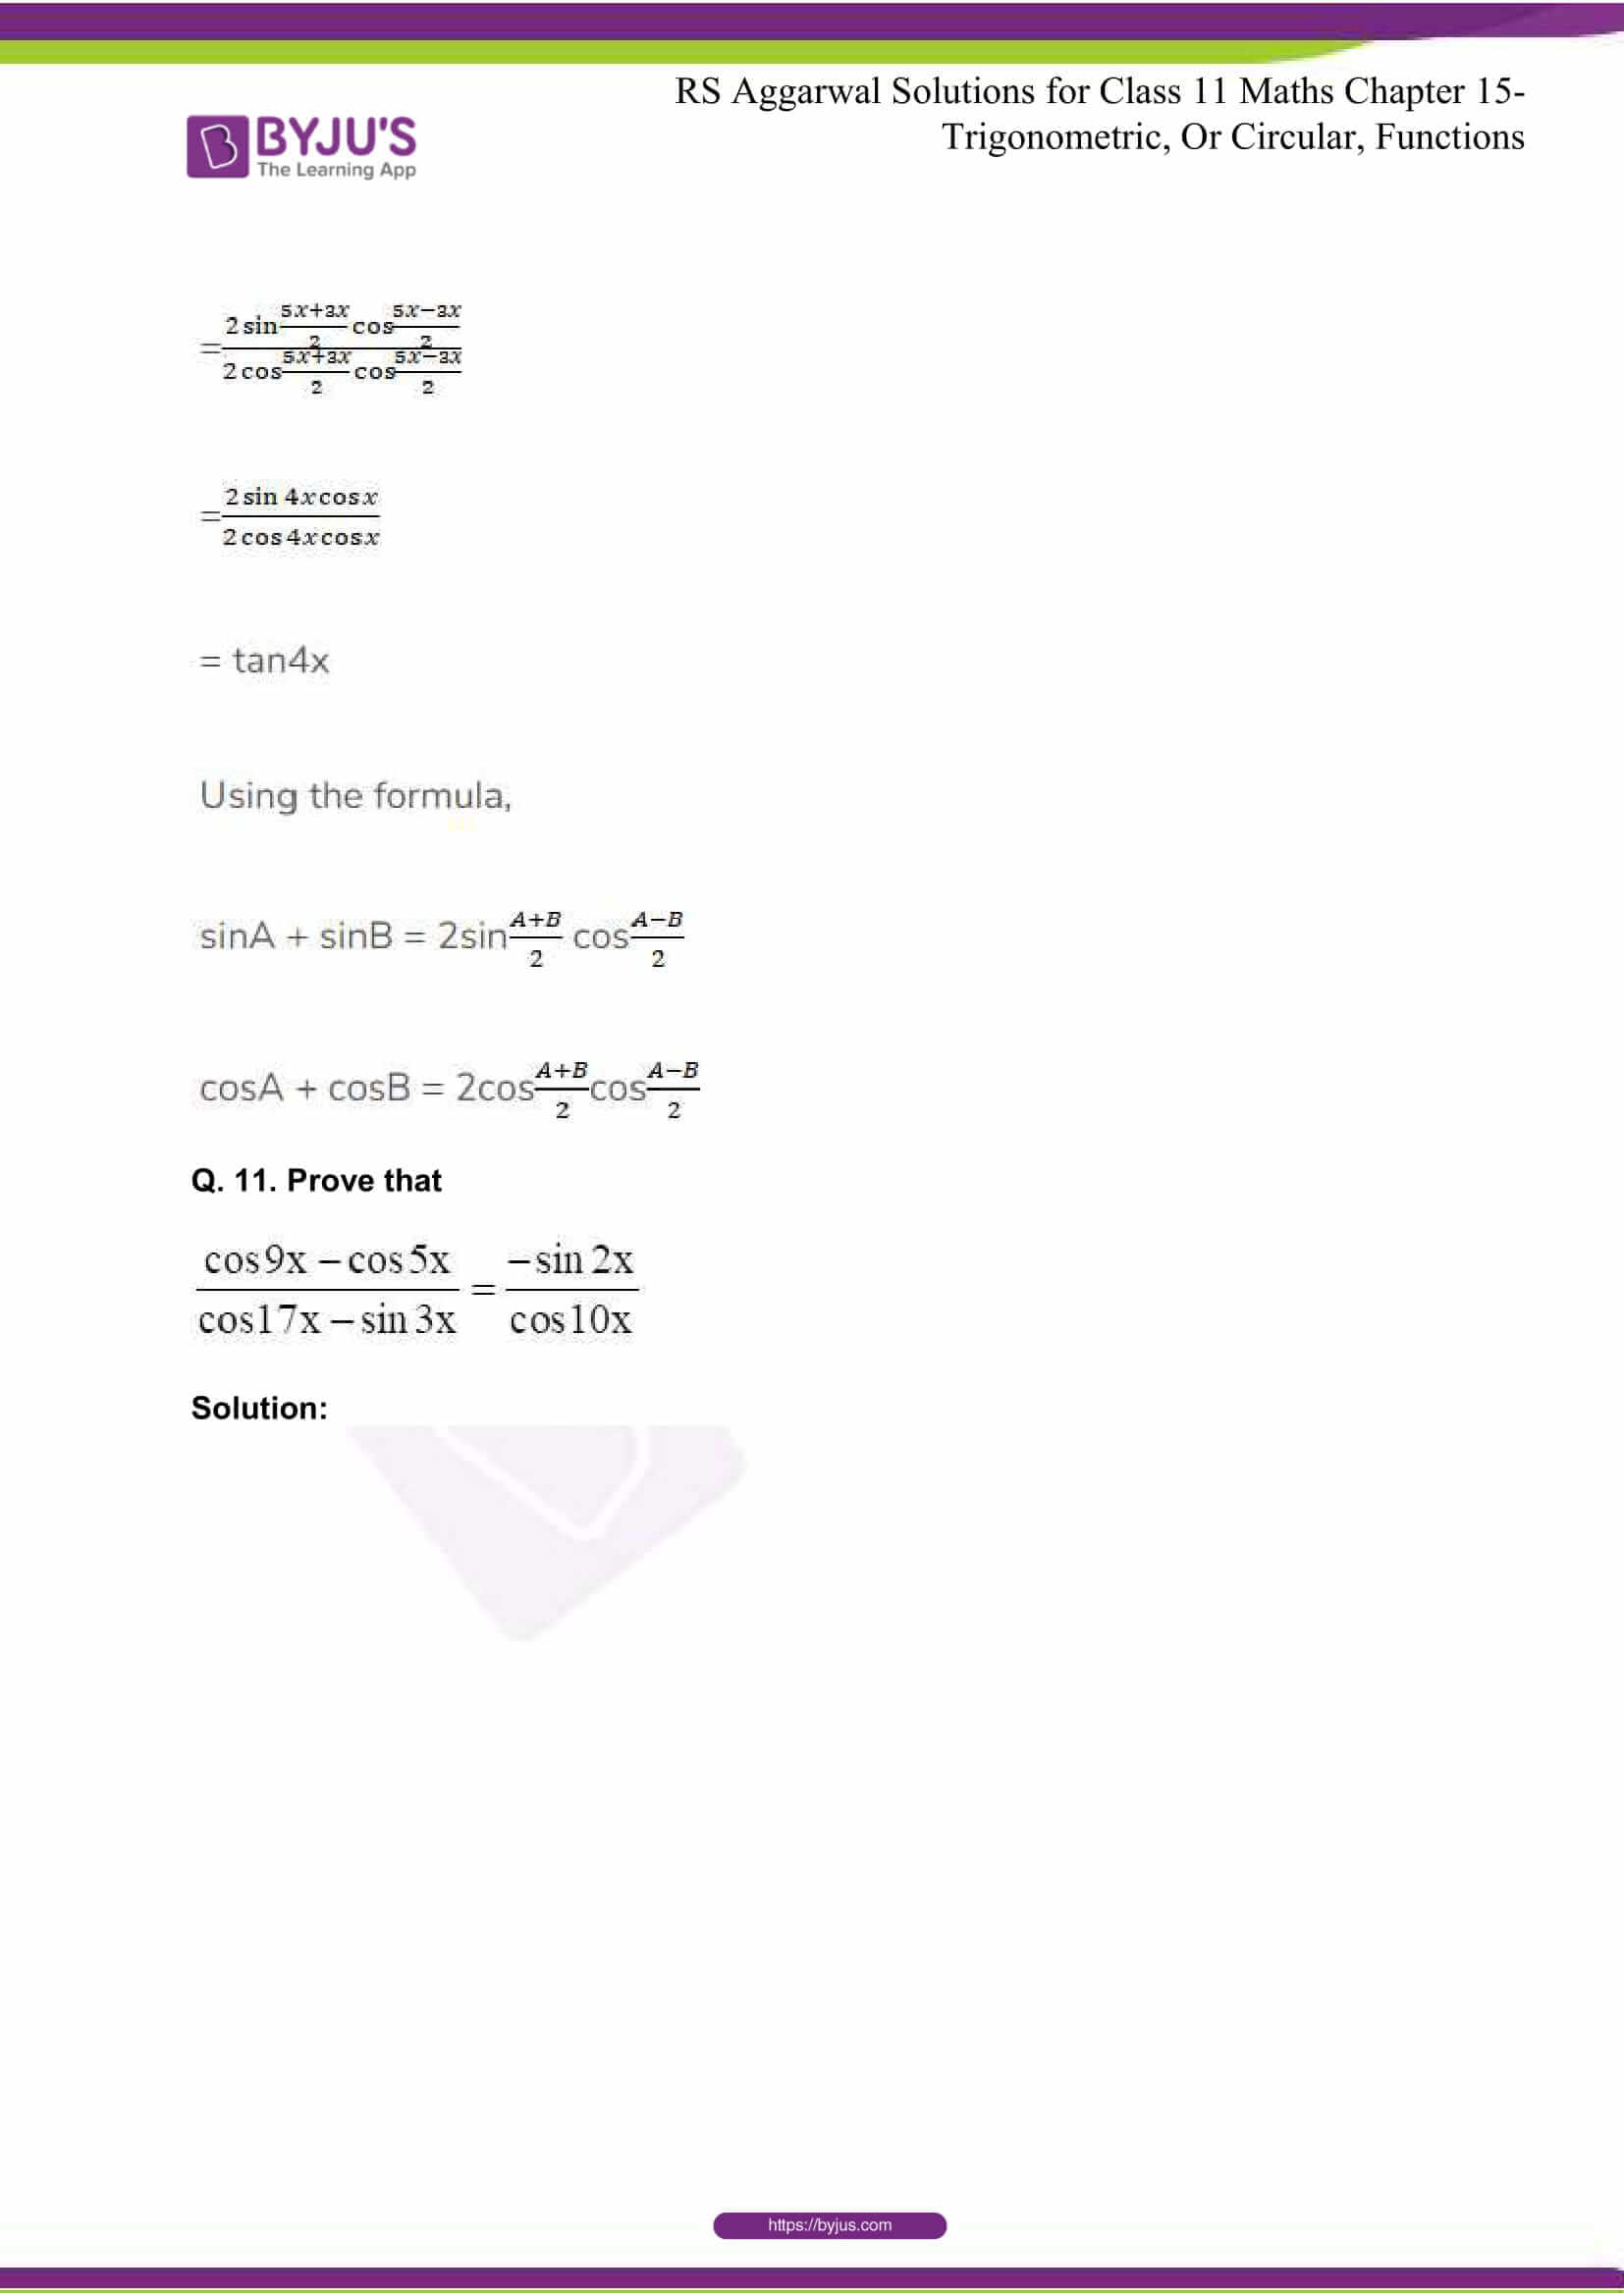 rsaggarwal solutions class 11 maths chapter 15 058